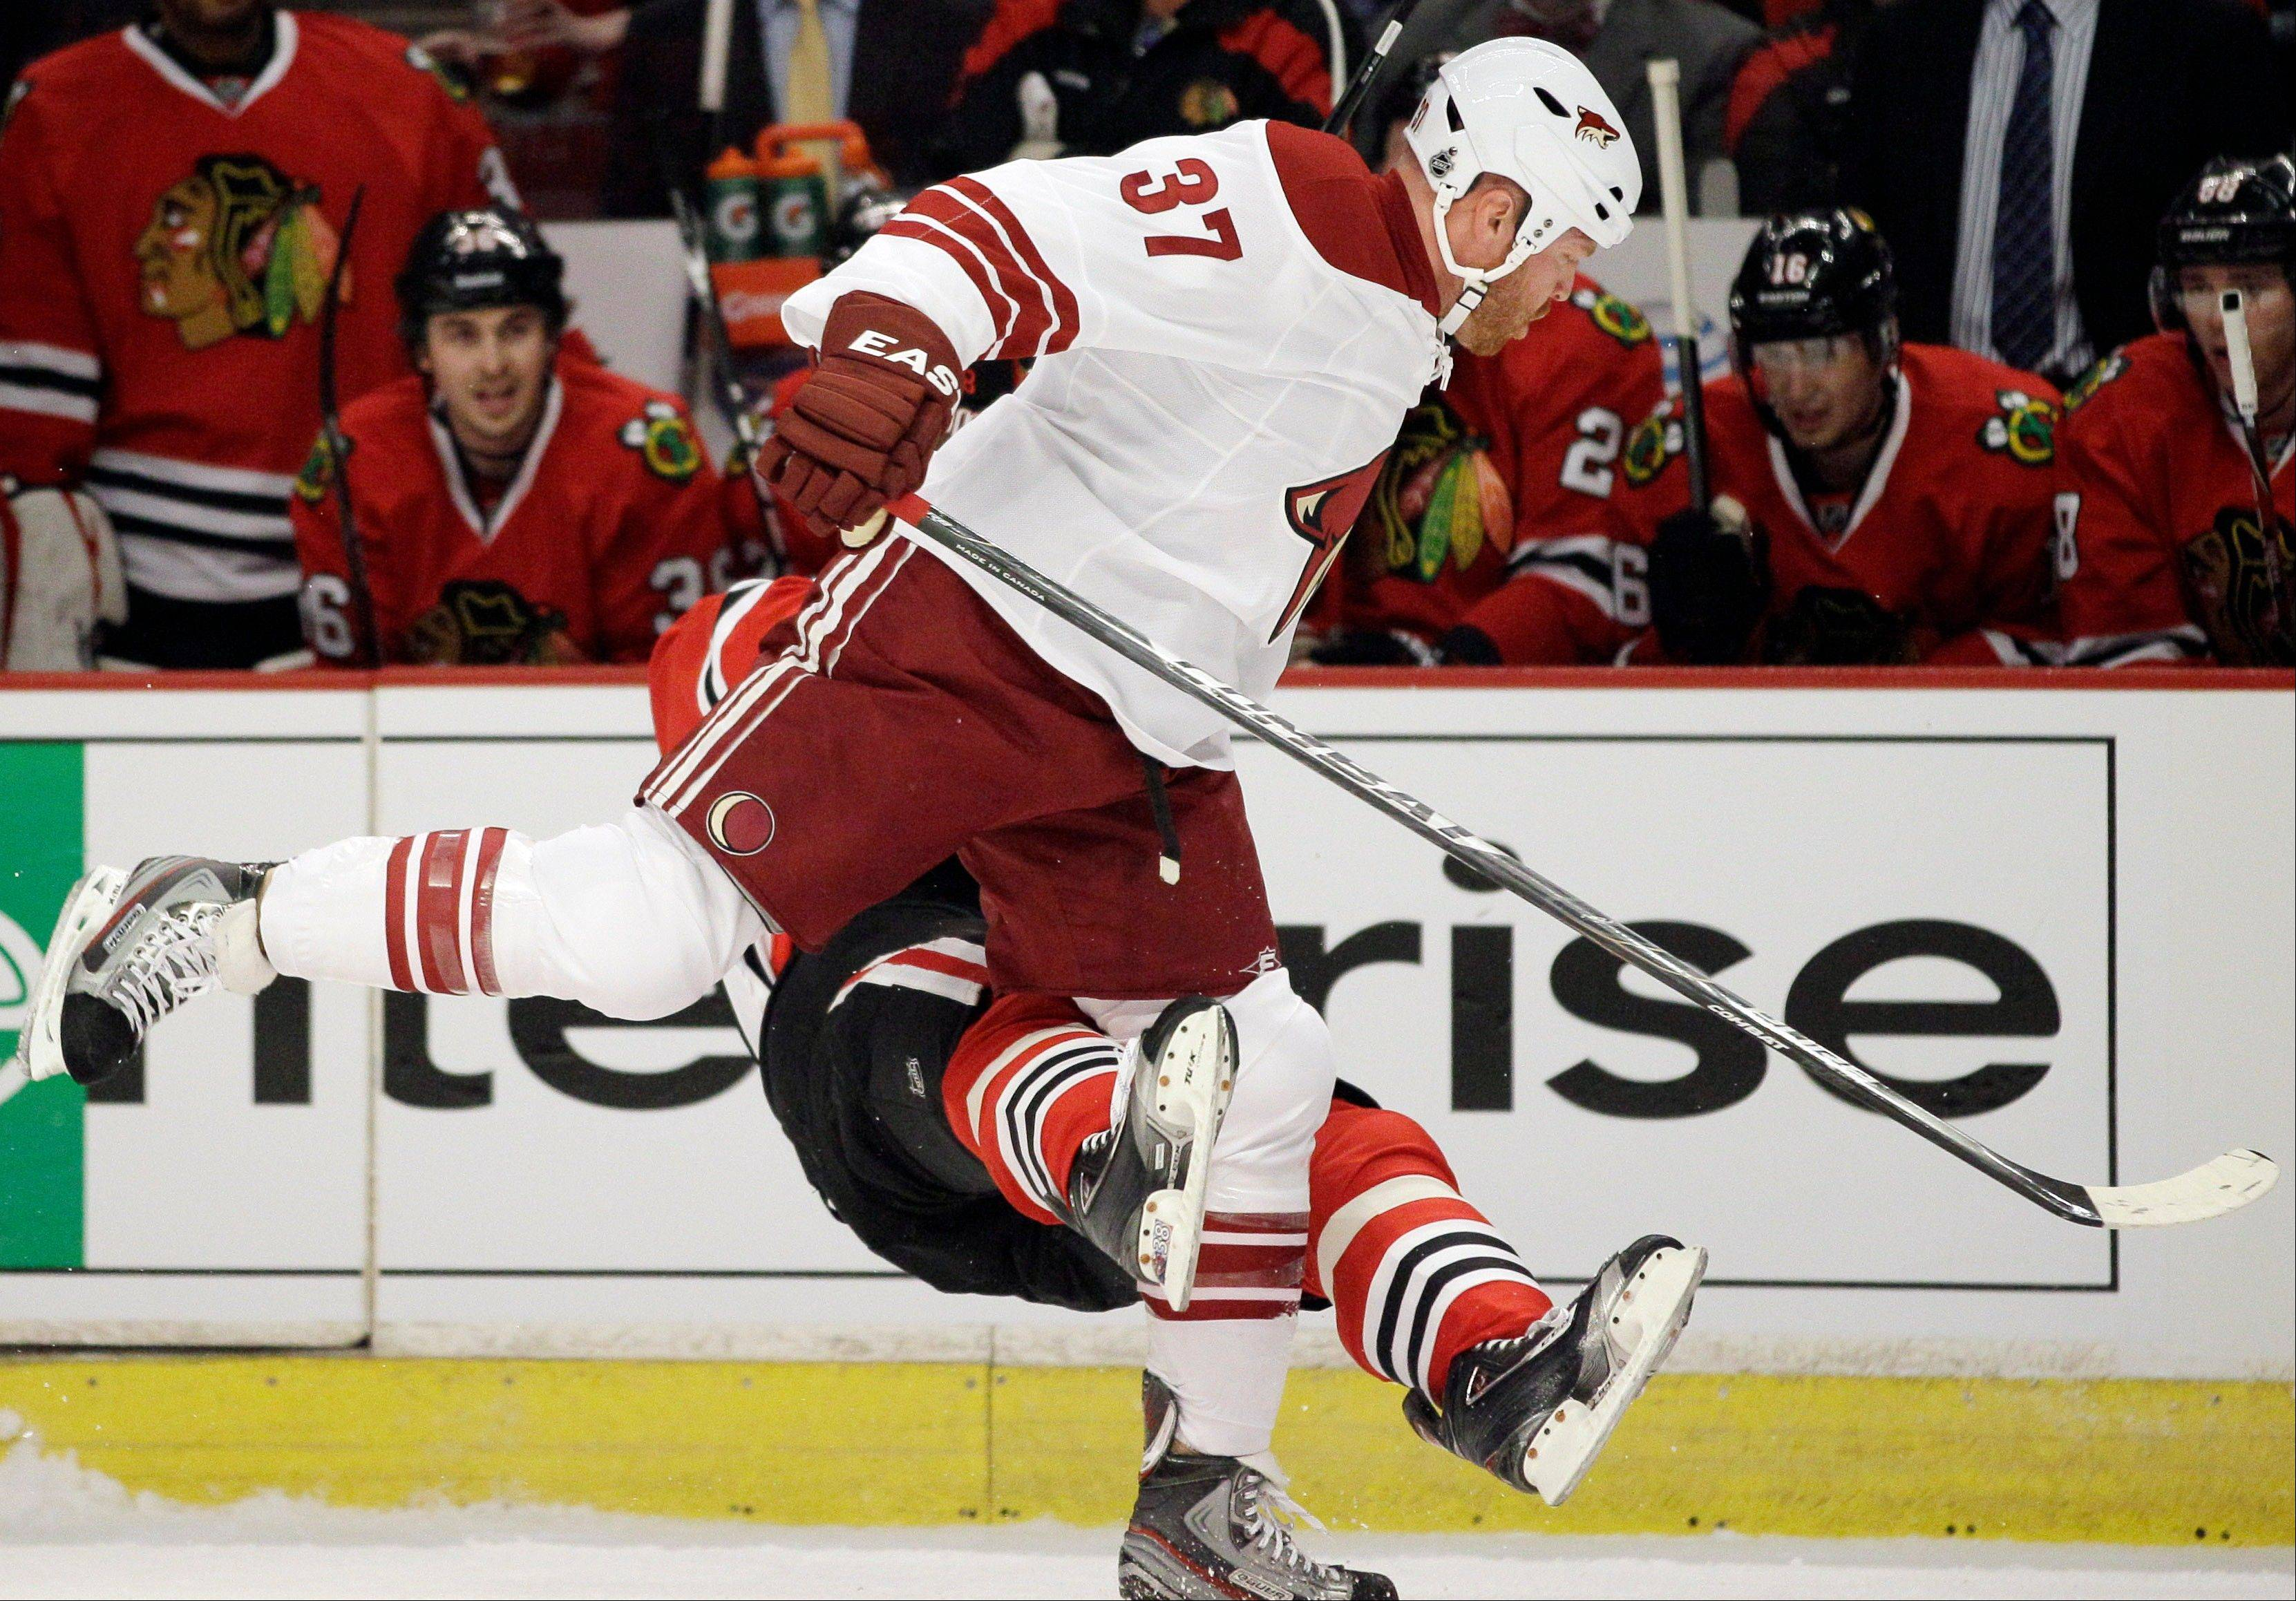 The Hawks' Marian Hossa falls down after getting checked by the Coyotes' Raffi Torres during the first period of Game 3 of their first-round playoff series at the United Center.